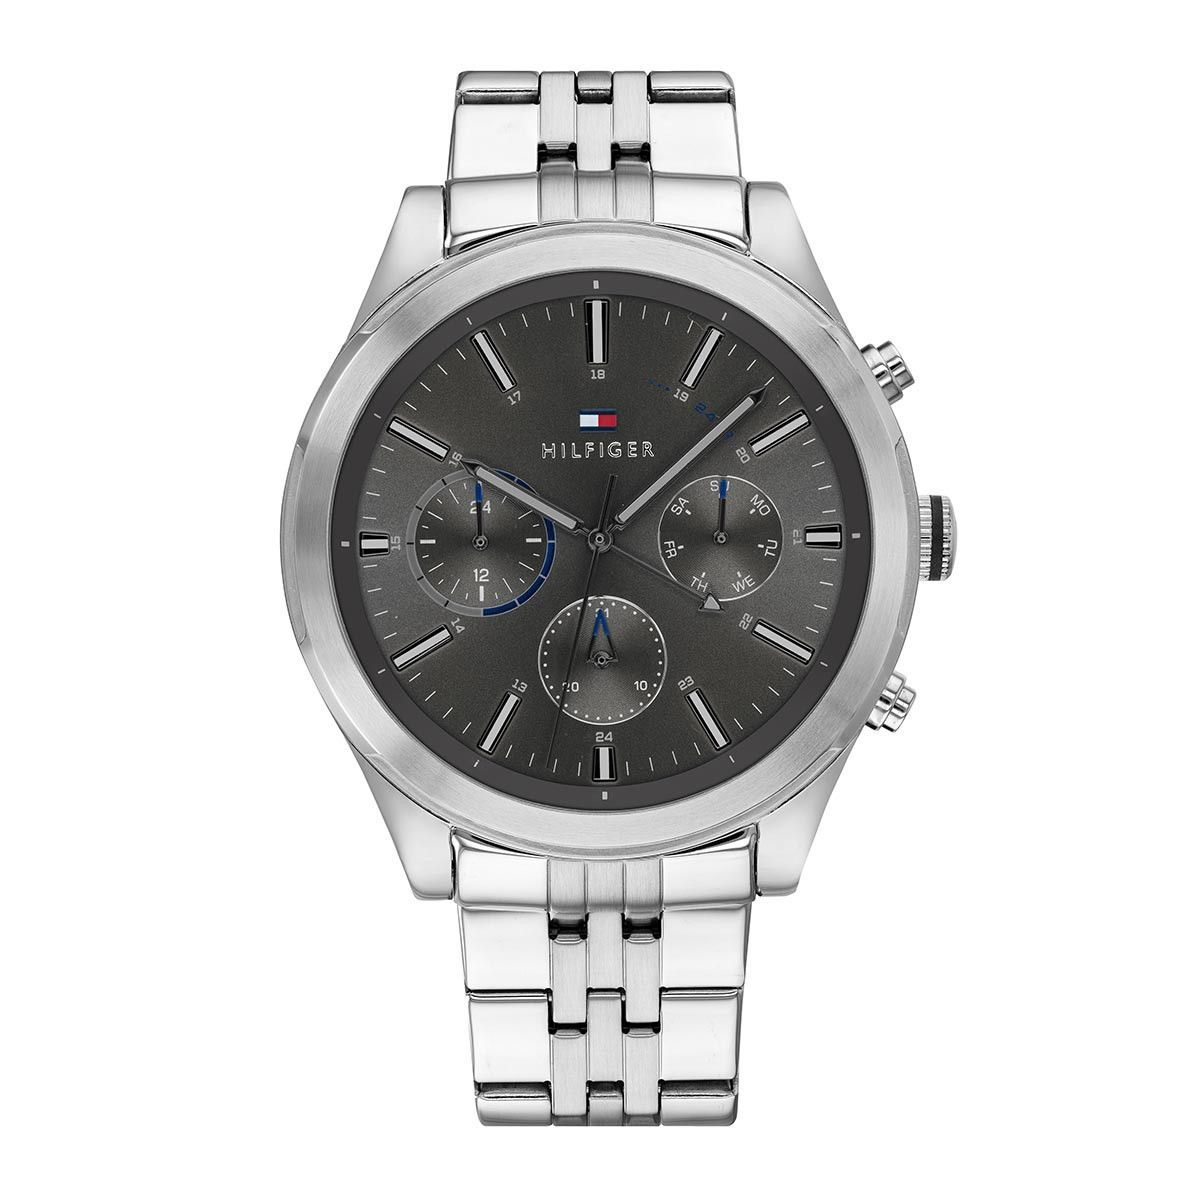 Tommy Hilfiger Men Multifunctional Watch Ashton Silver Uhr Uhr Uhren Fossil Uhr Damenuh In 2020 Stainless Steel Bracelet Men Stainless Steel Bracelet Bracelet Watch